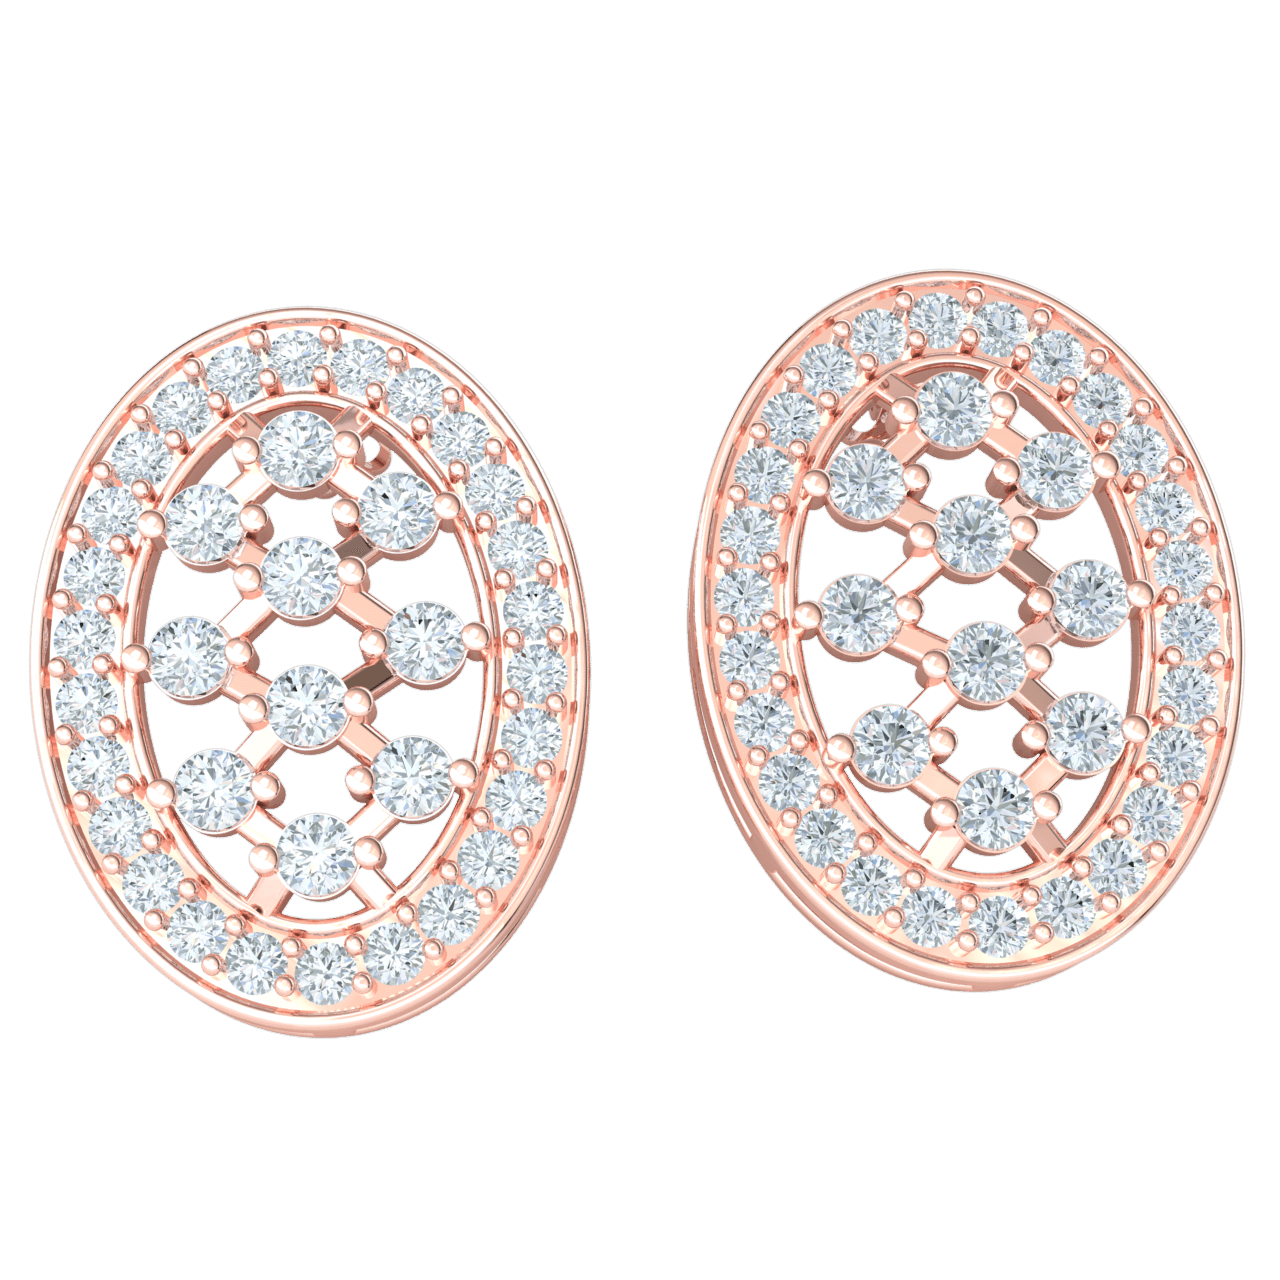 1.18 Ct GH I1 Very Glamorous Oval Shaped Real Earrings Embedded With Stunning White Diamonds in 14 kt Gold